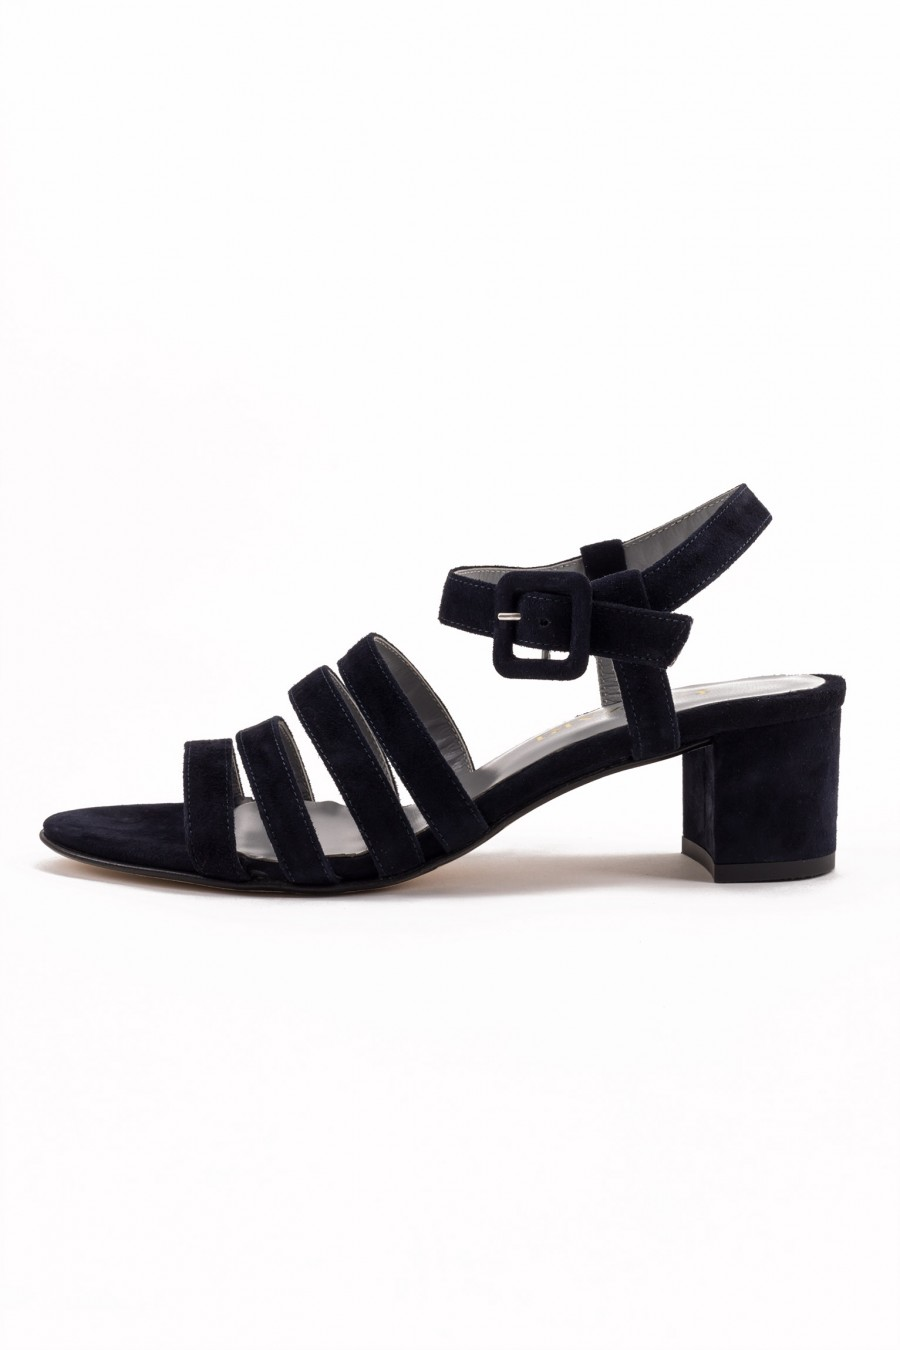 Sandal with medium heel